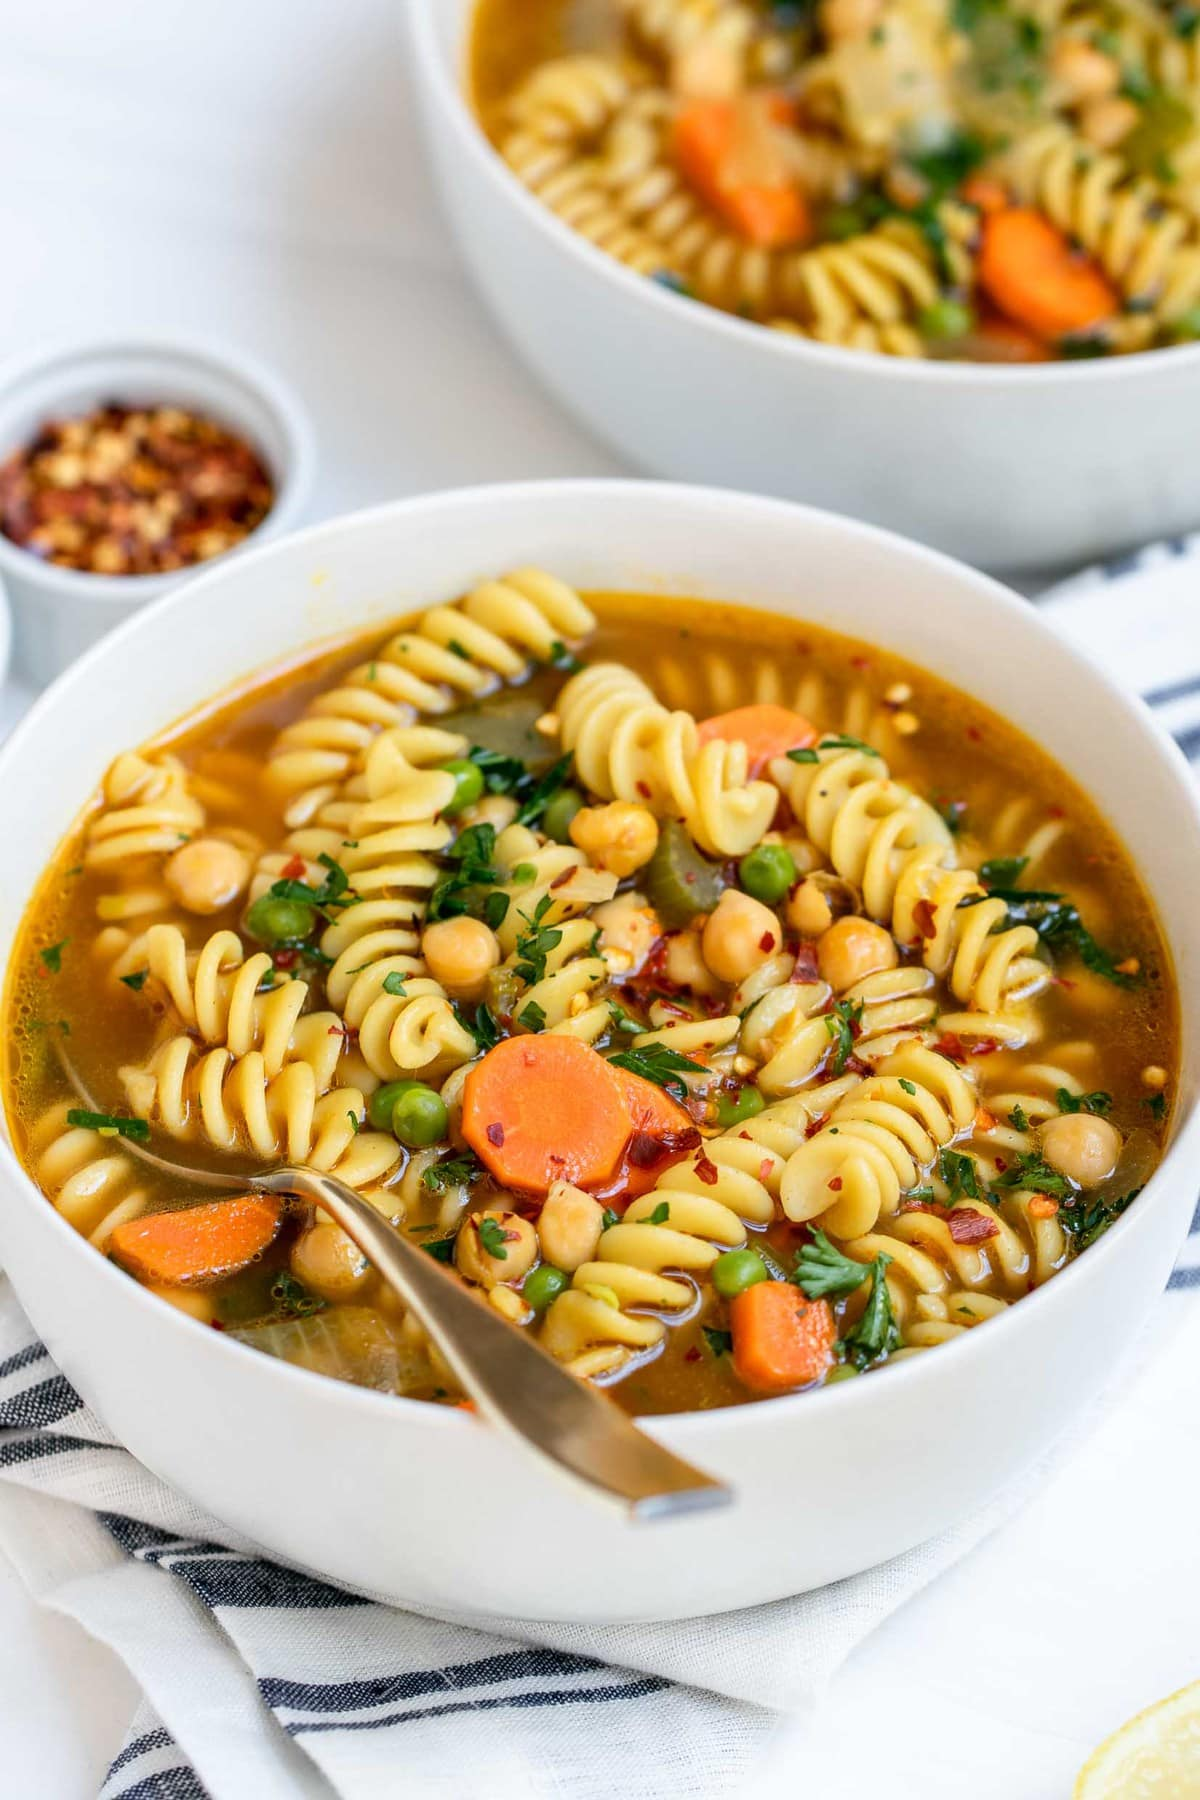 Vegetarian chickpea noodle soup with vegetables in a white bowl.